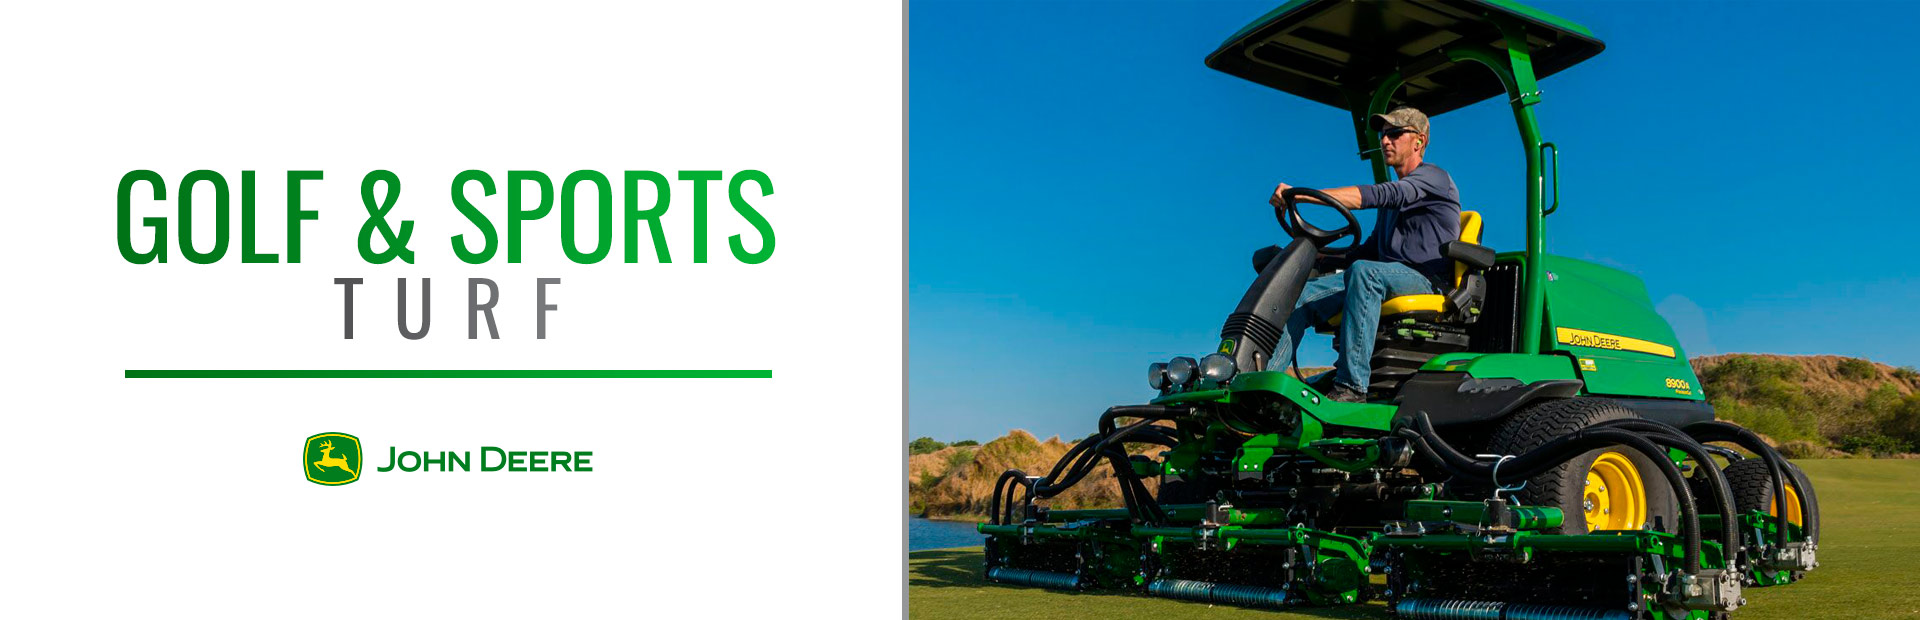 John Deere: Golf & Sports Turf